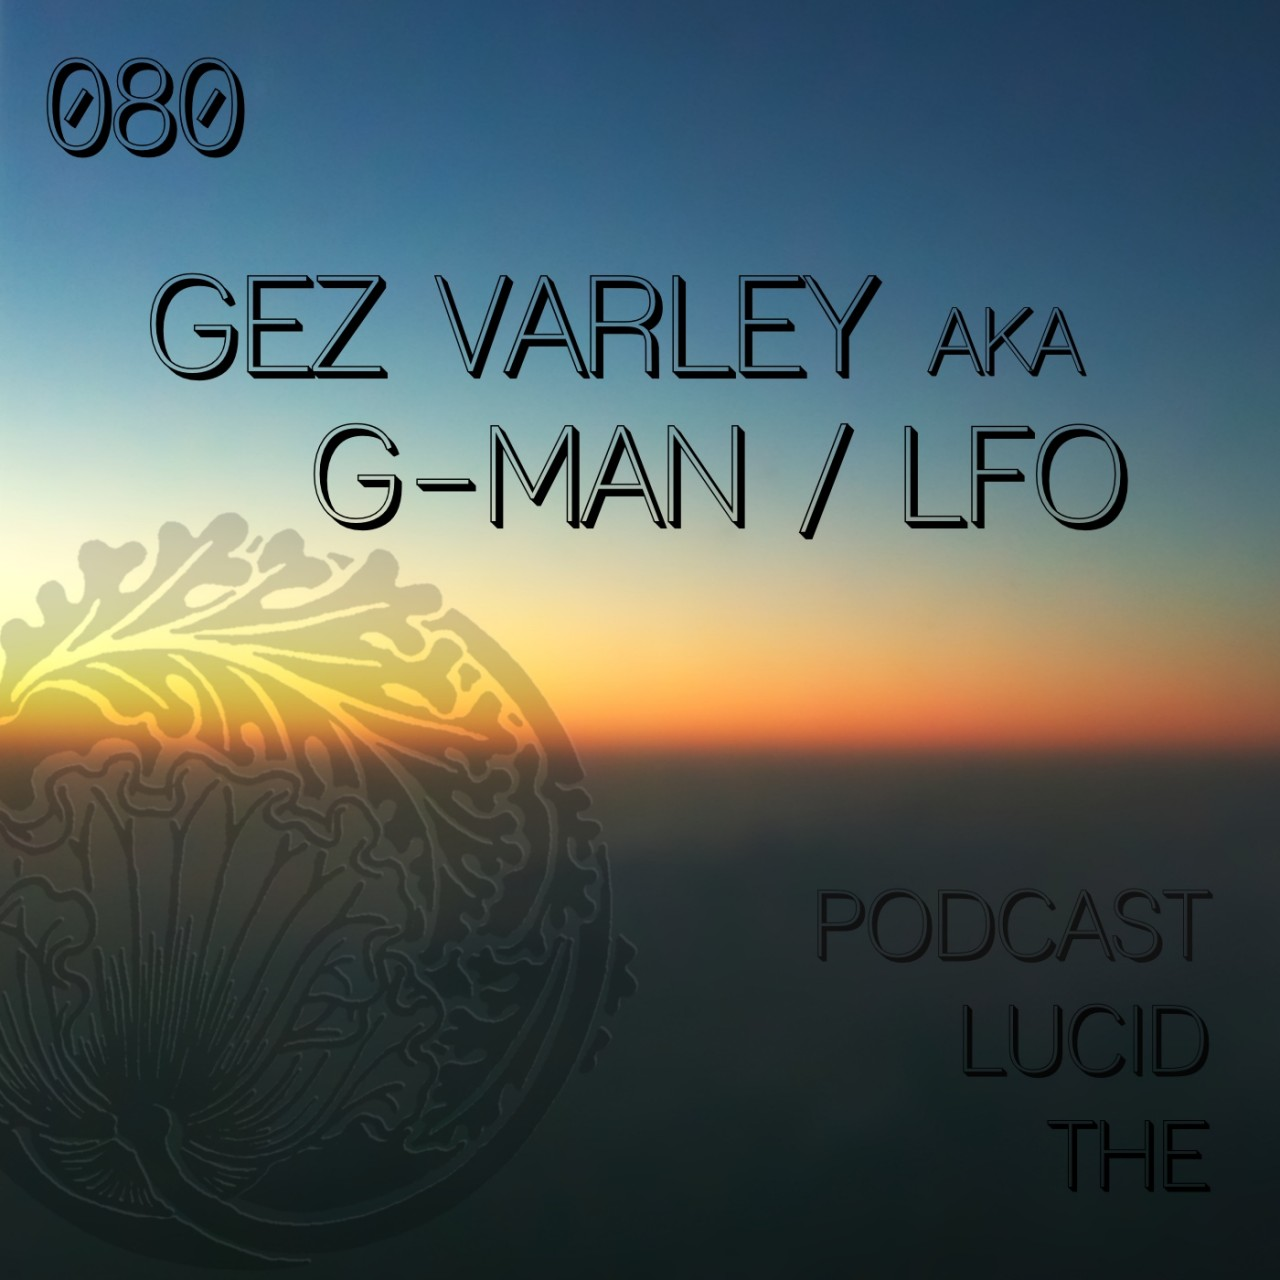 The Lucid Podcast 080 Gez Varley aka G-Man / LFO